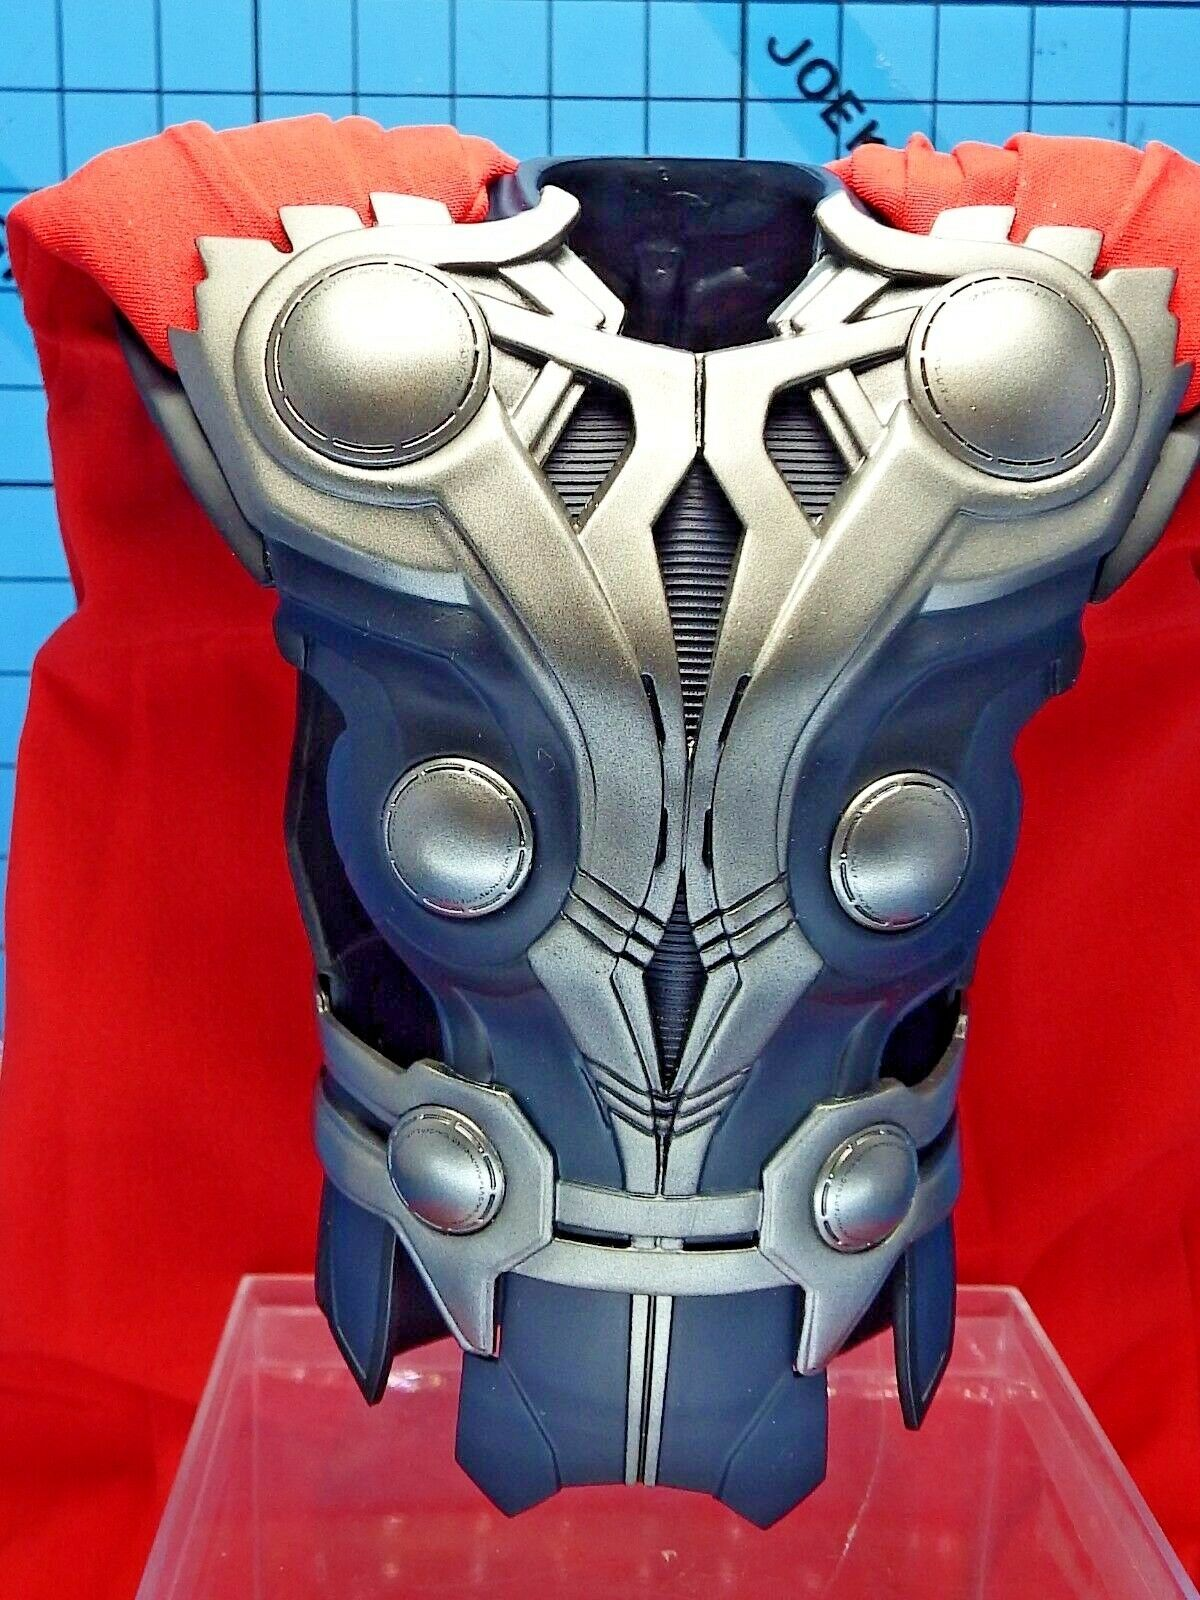 Hot Hot Hot Toys 1 6 MMS175 The Avengers Thor Figure - Upper Body Armor + Red Cape b625f7